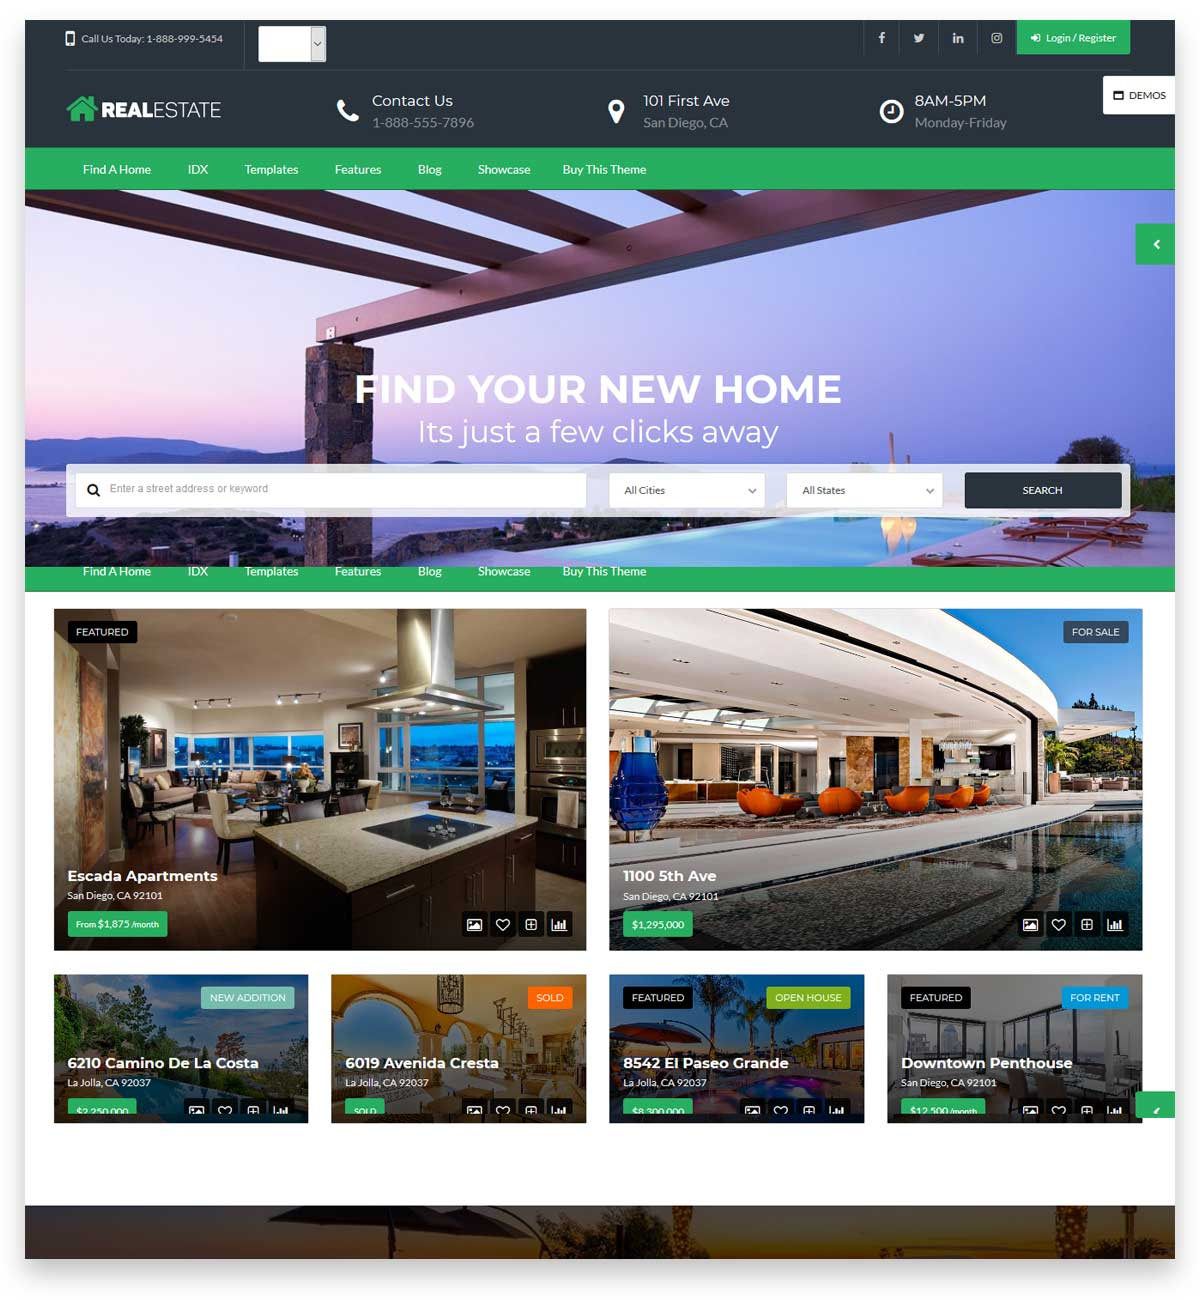 Real Estate 7 WordPress theme